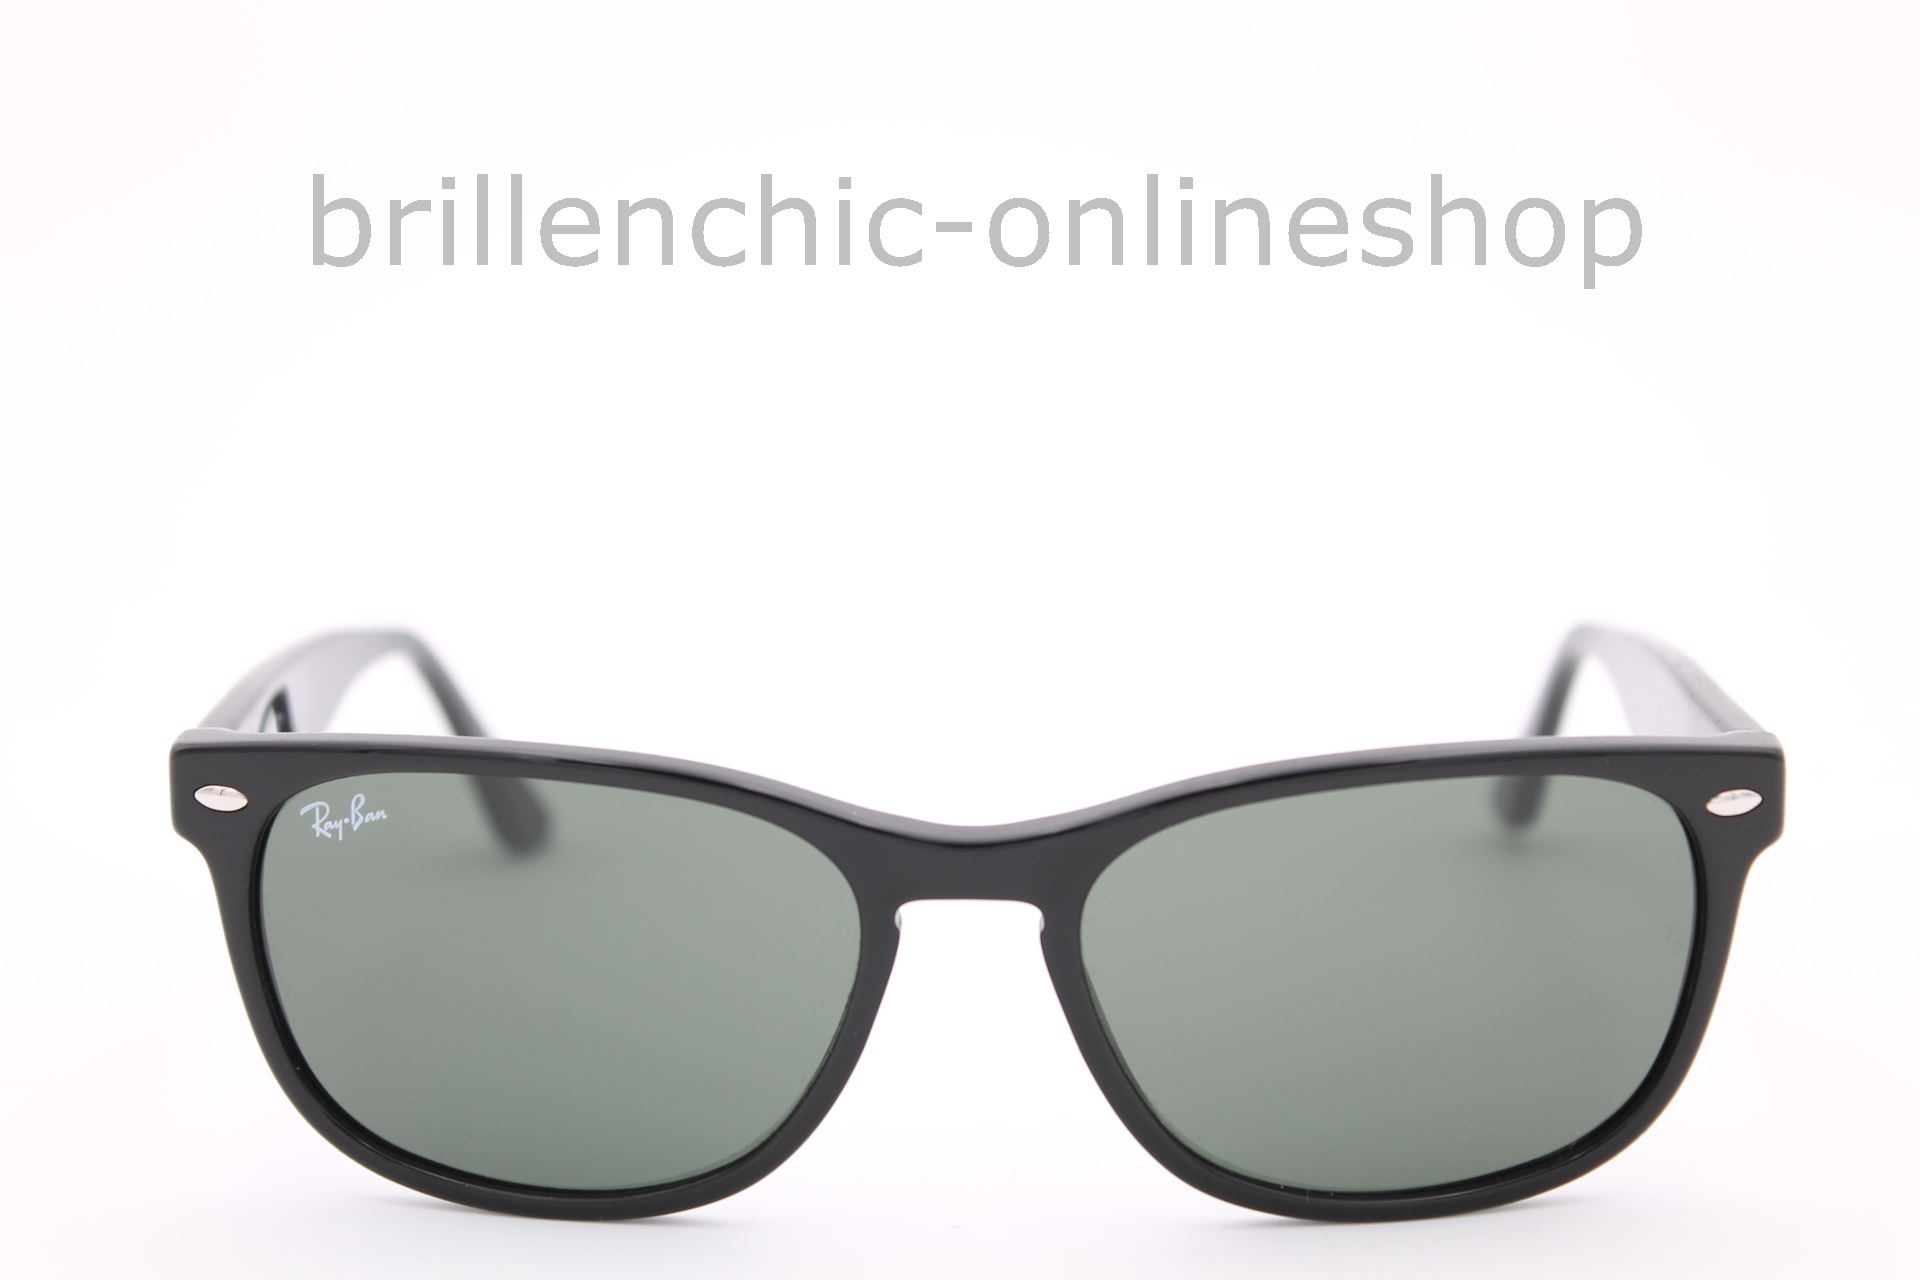 c457d2c0d52 Brillenchic-onlineshop in Berlin - Ray Ban RB 2184 901 31